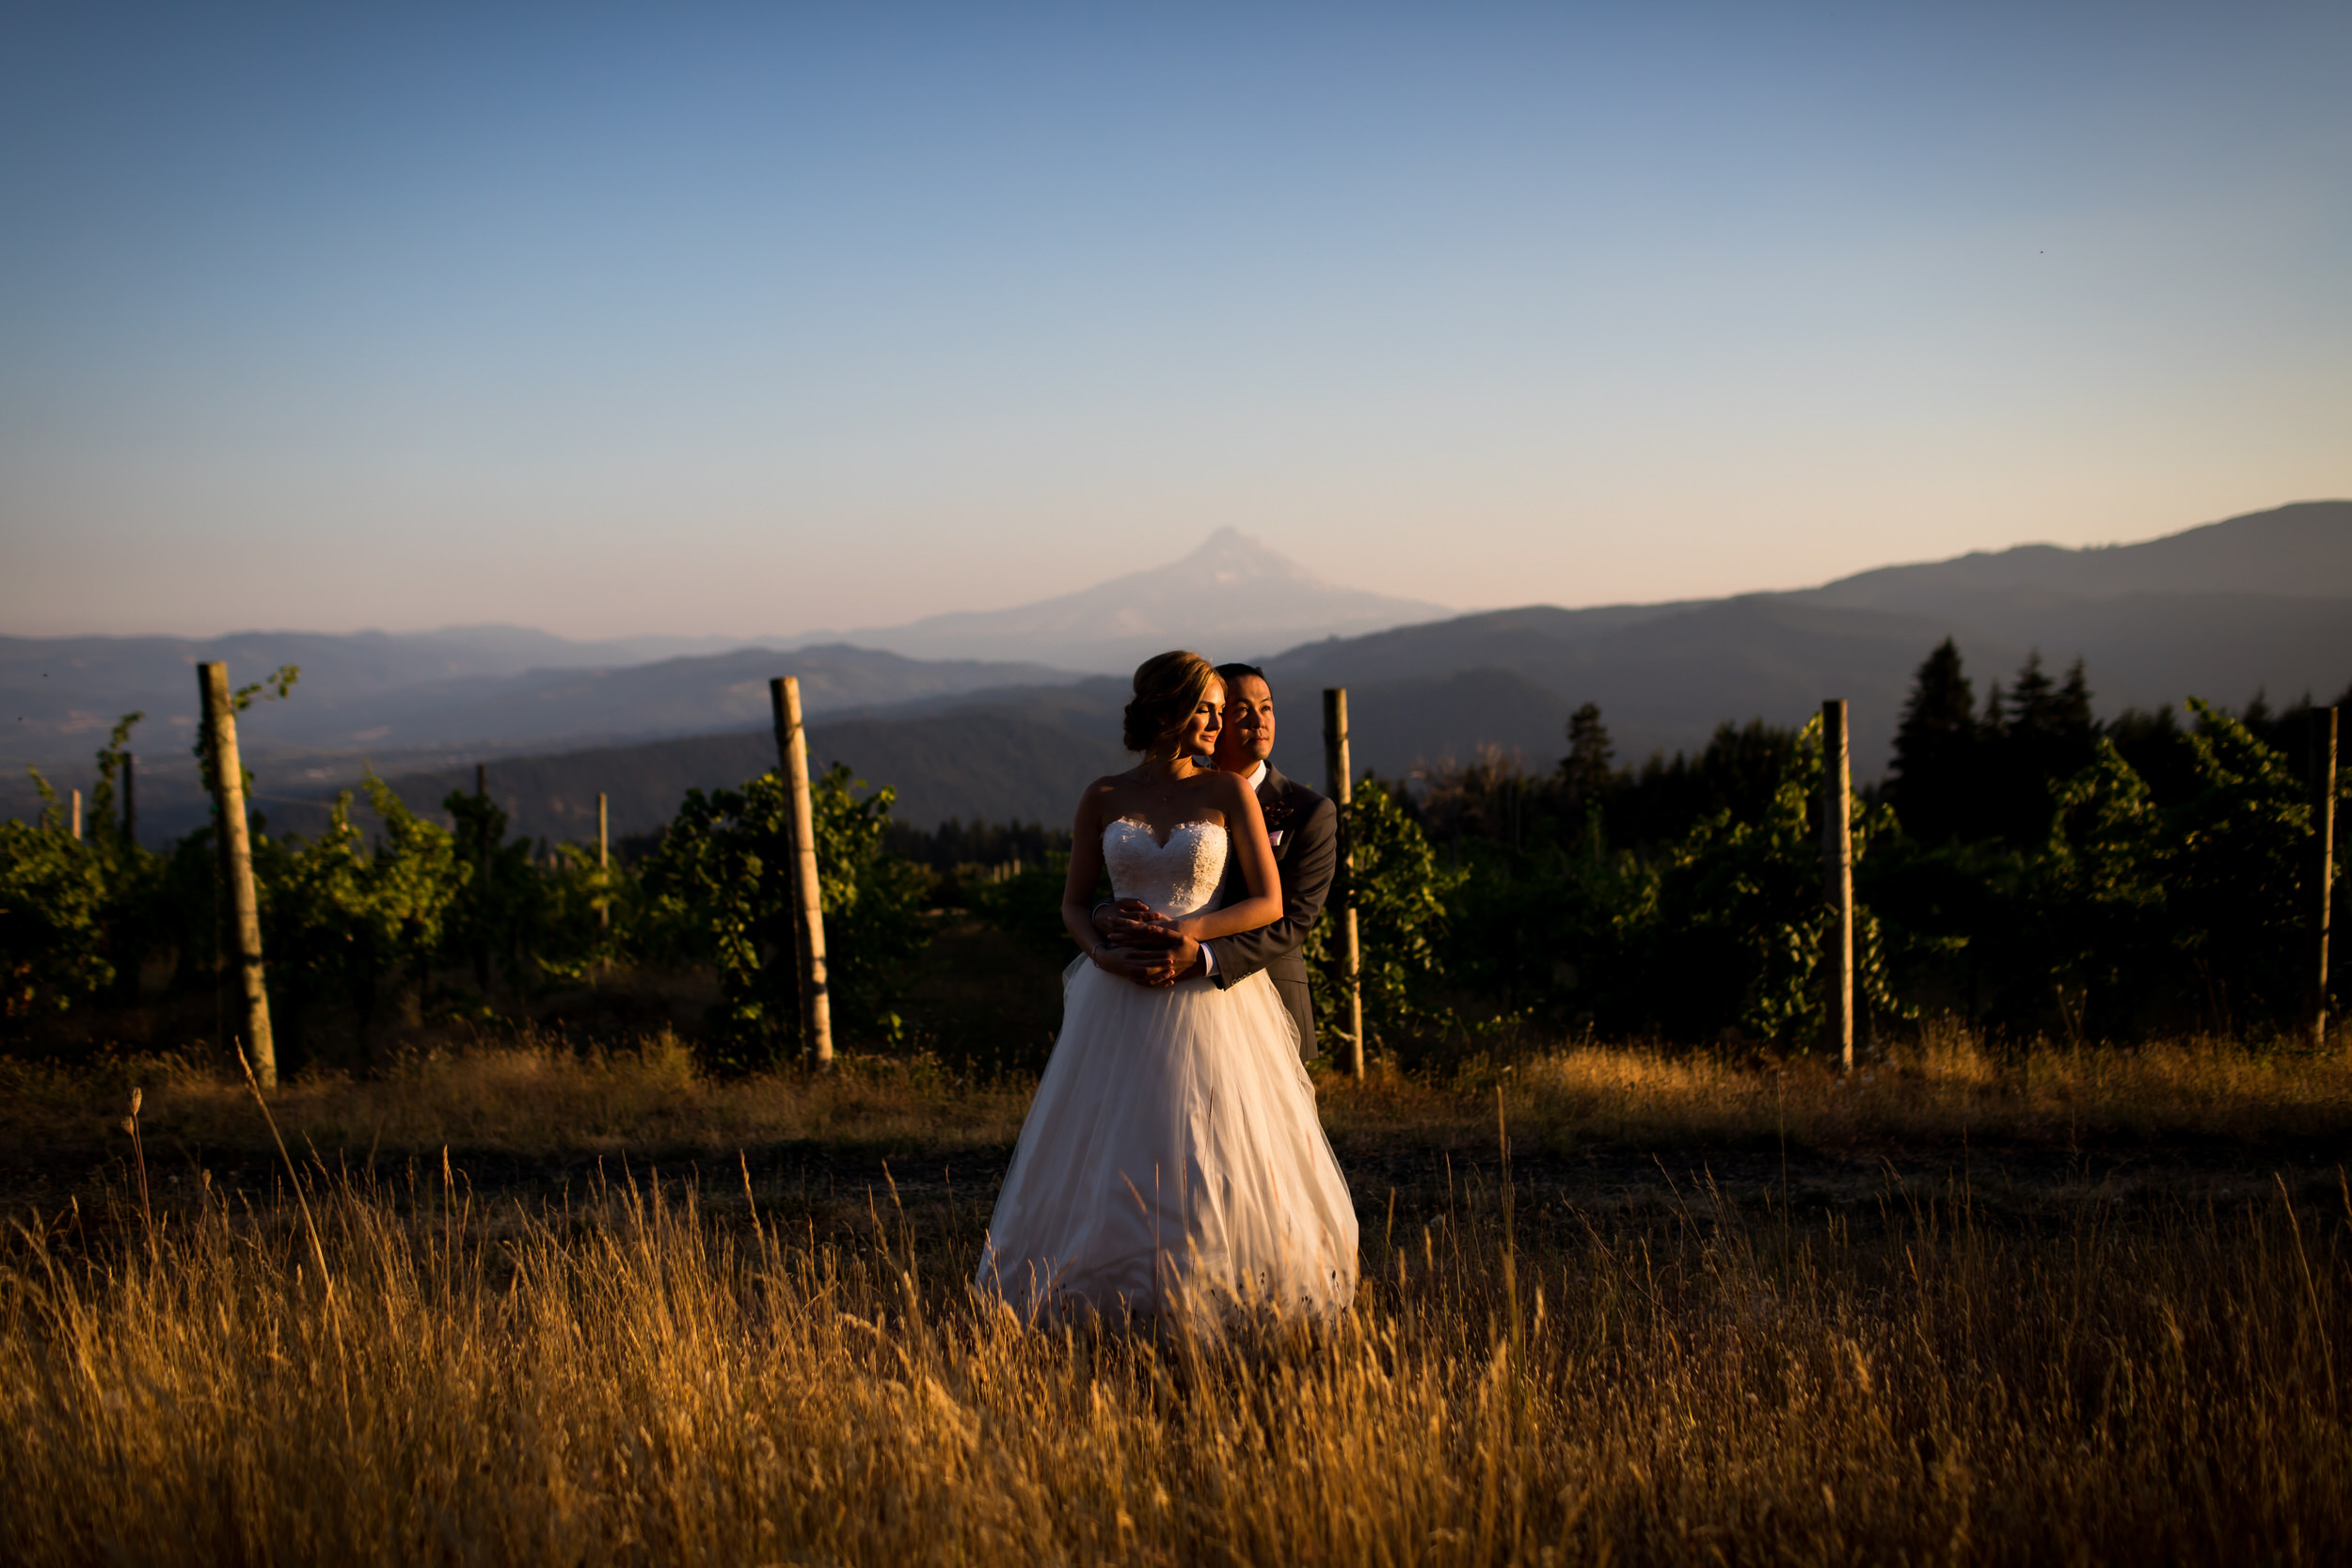 gorge_crest_vineyards_starkphotography_natalie_hai028